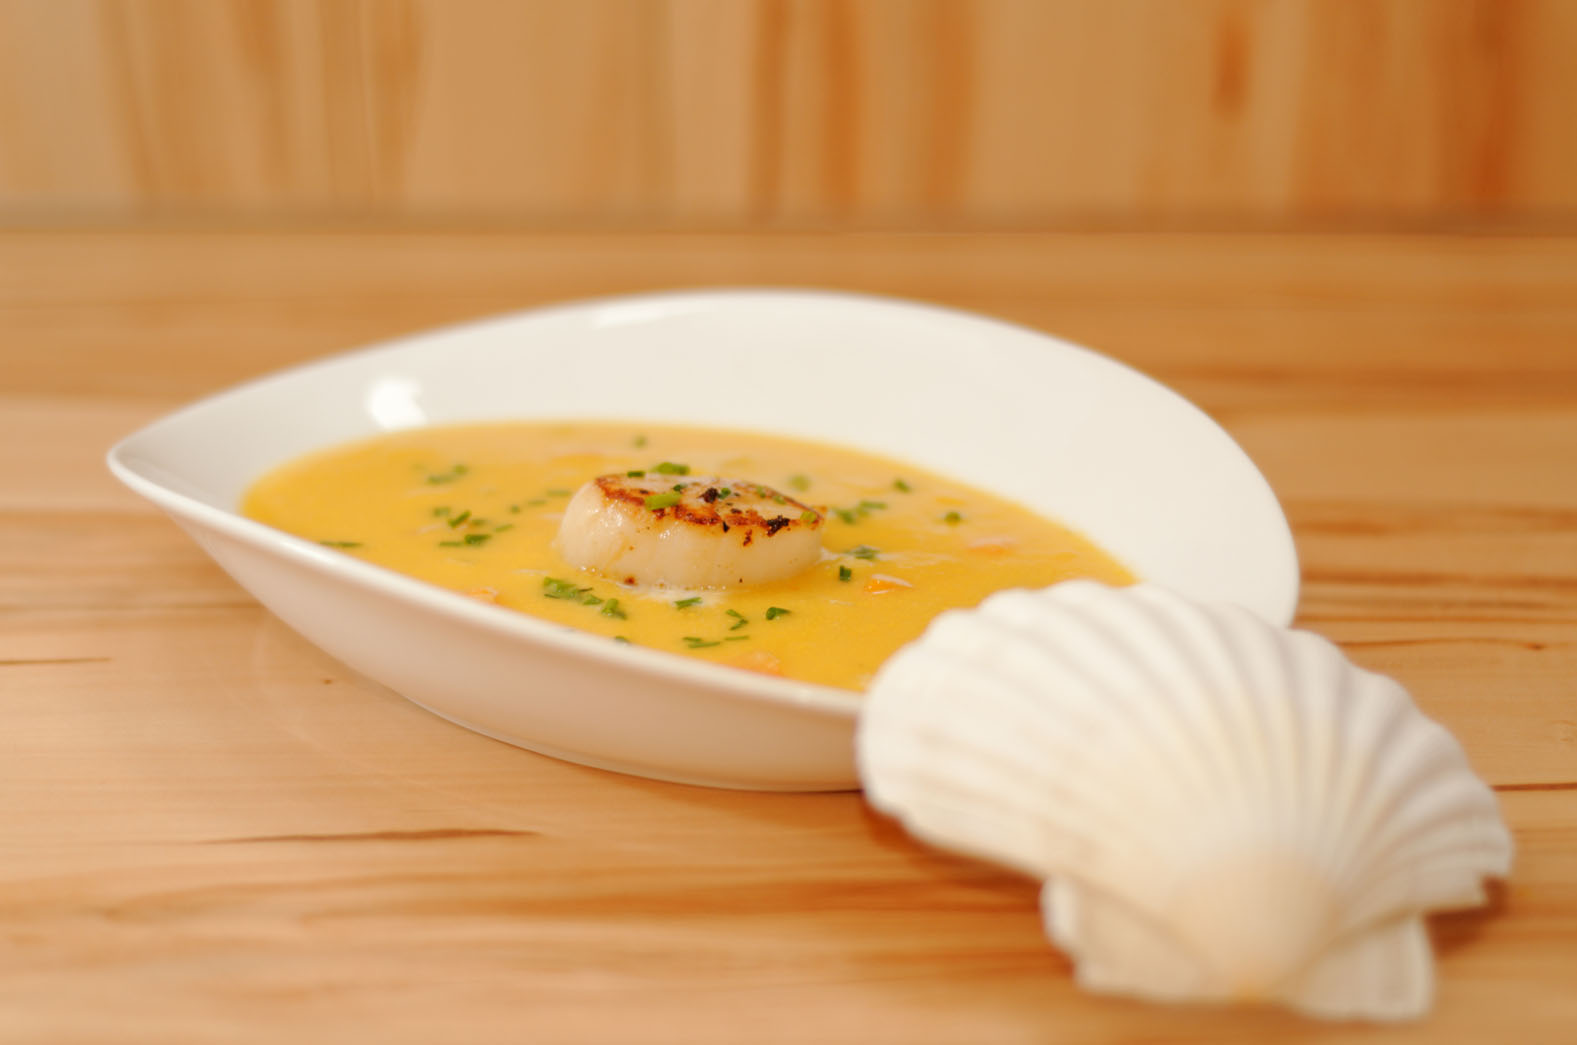 Karotten-Kokos Suppe